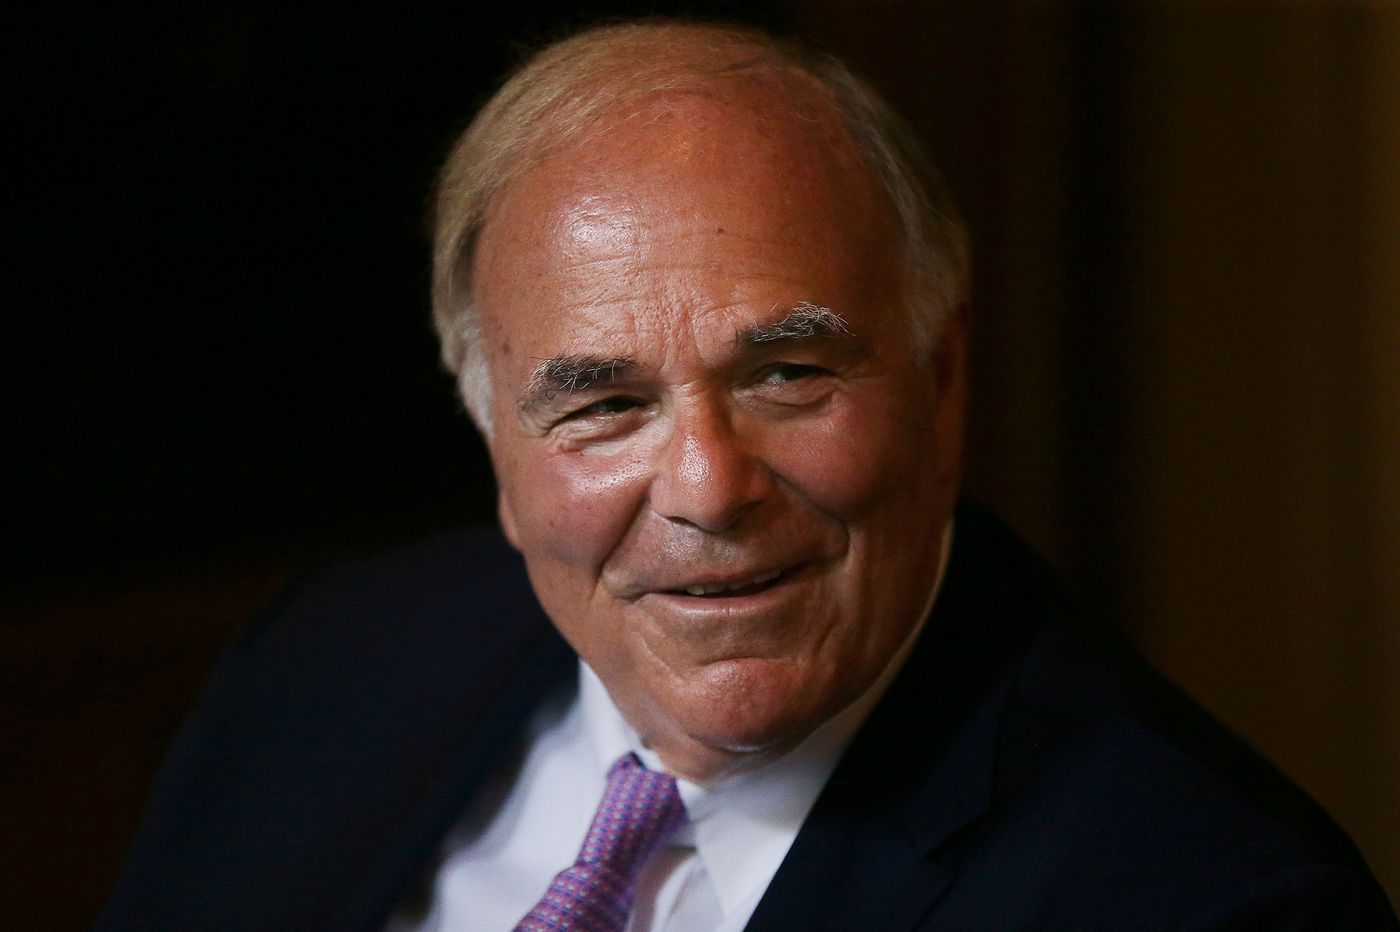 Former Pa. Gov. Ed Rendell announces he has Parkinson's disease